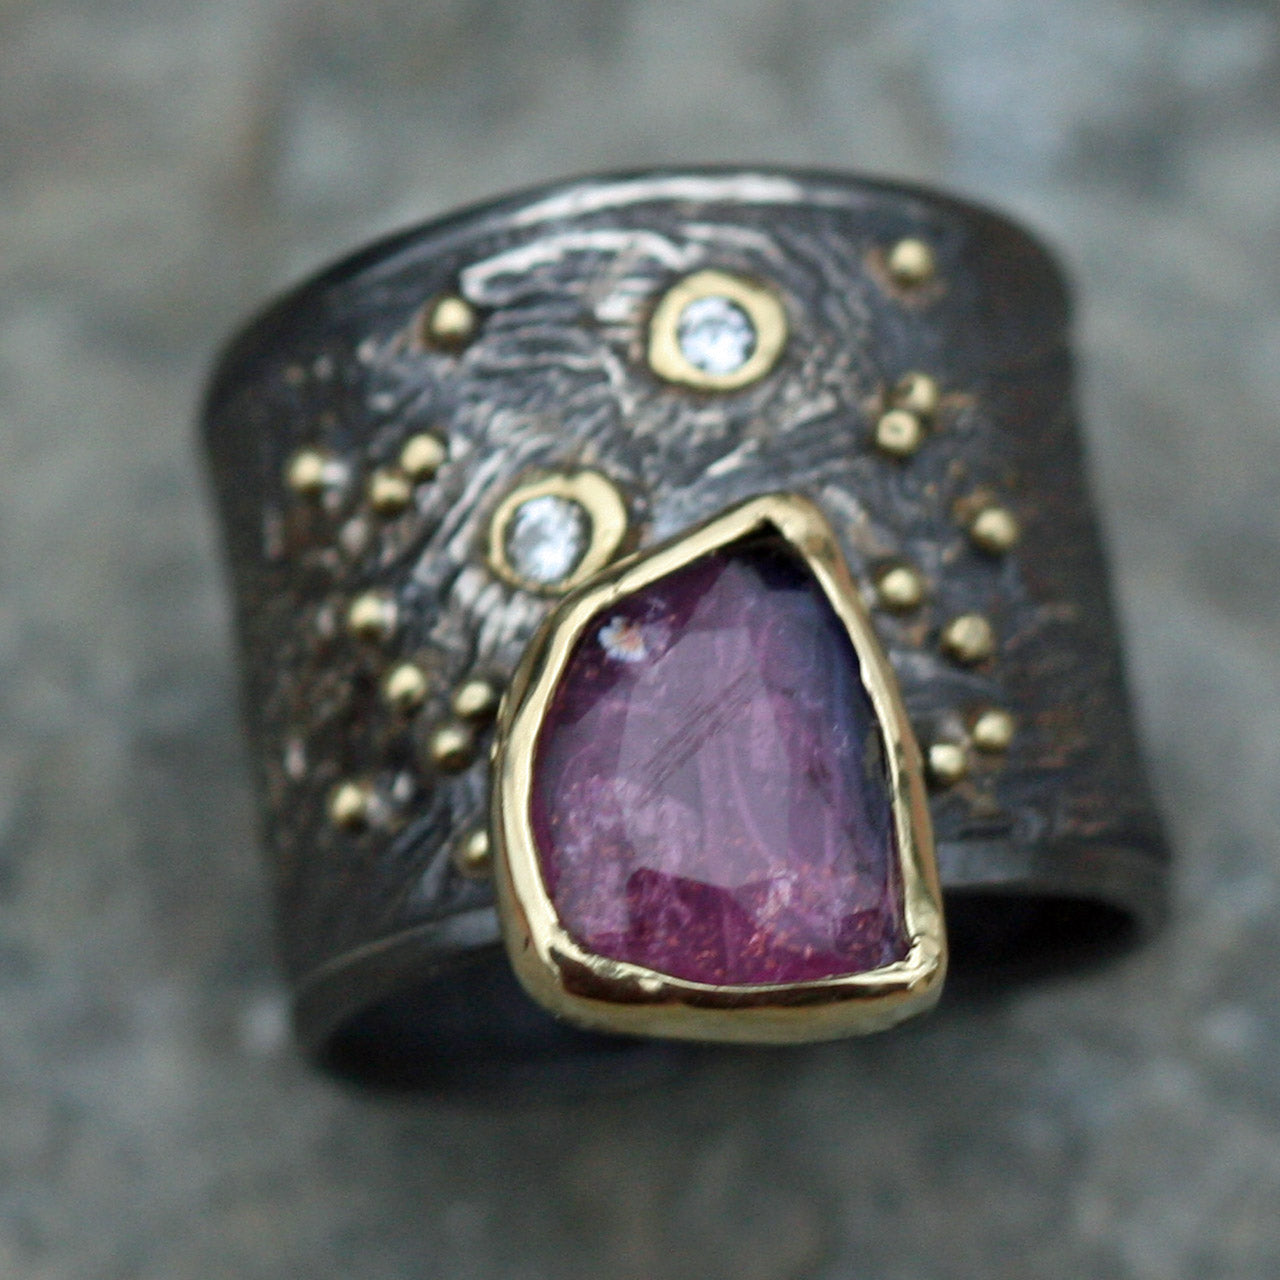 Pink tourmaline set in 18k gold ring -  71/2